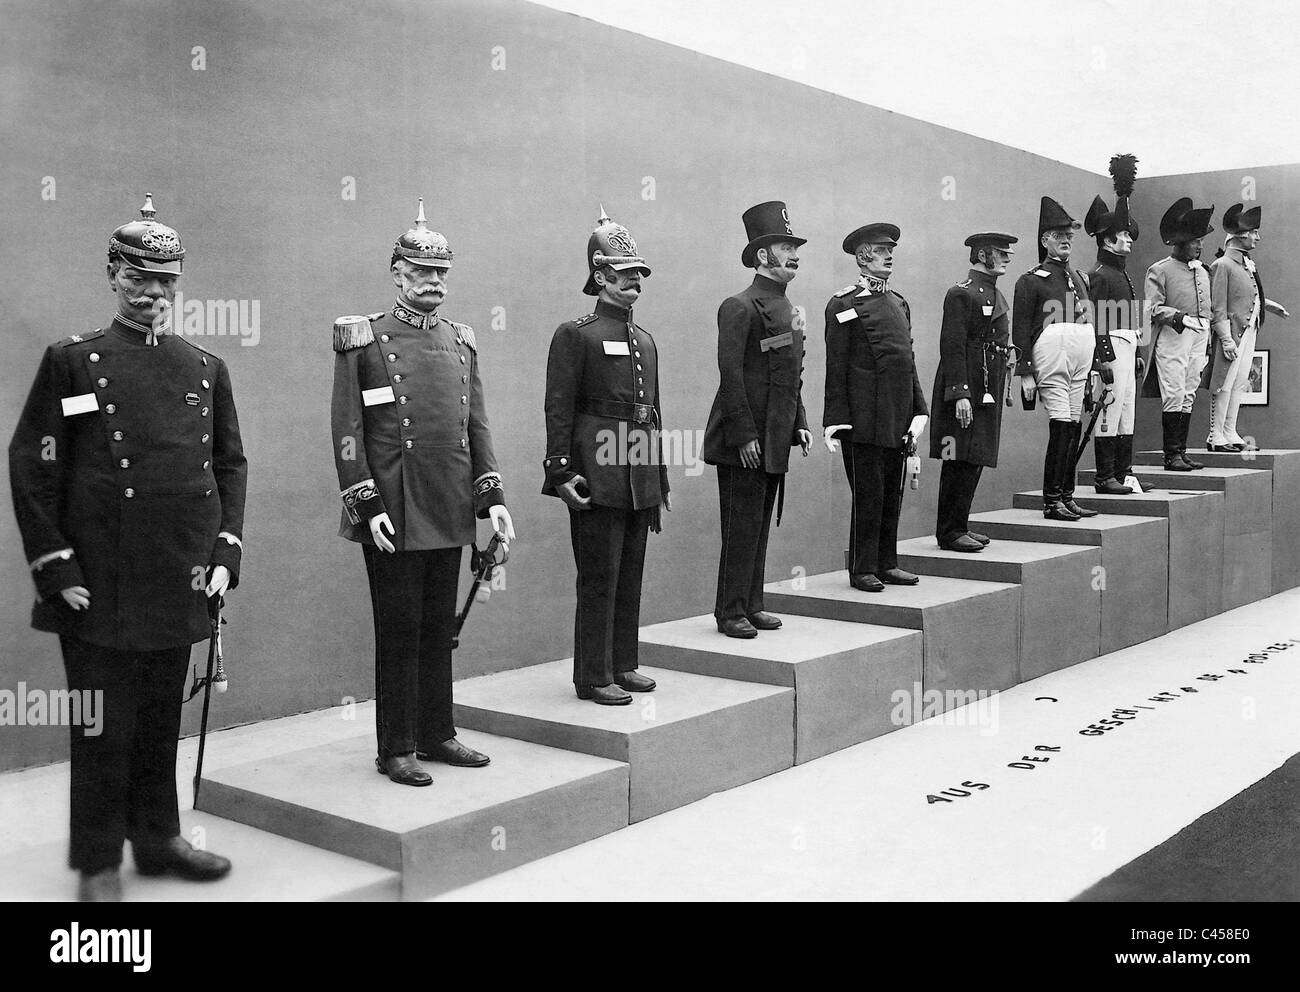 Historic police uniforms in an exhibition - Stock Image